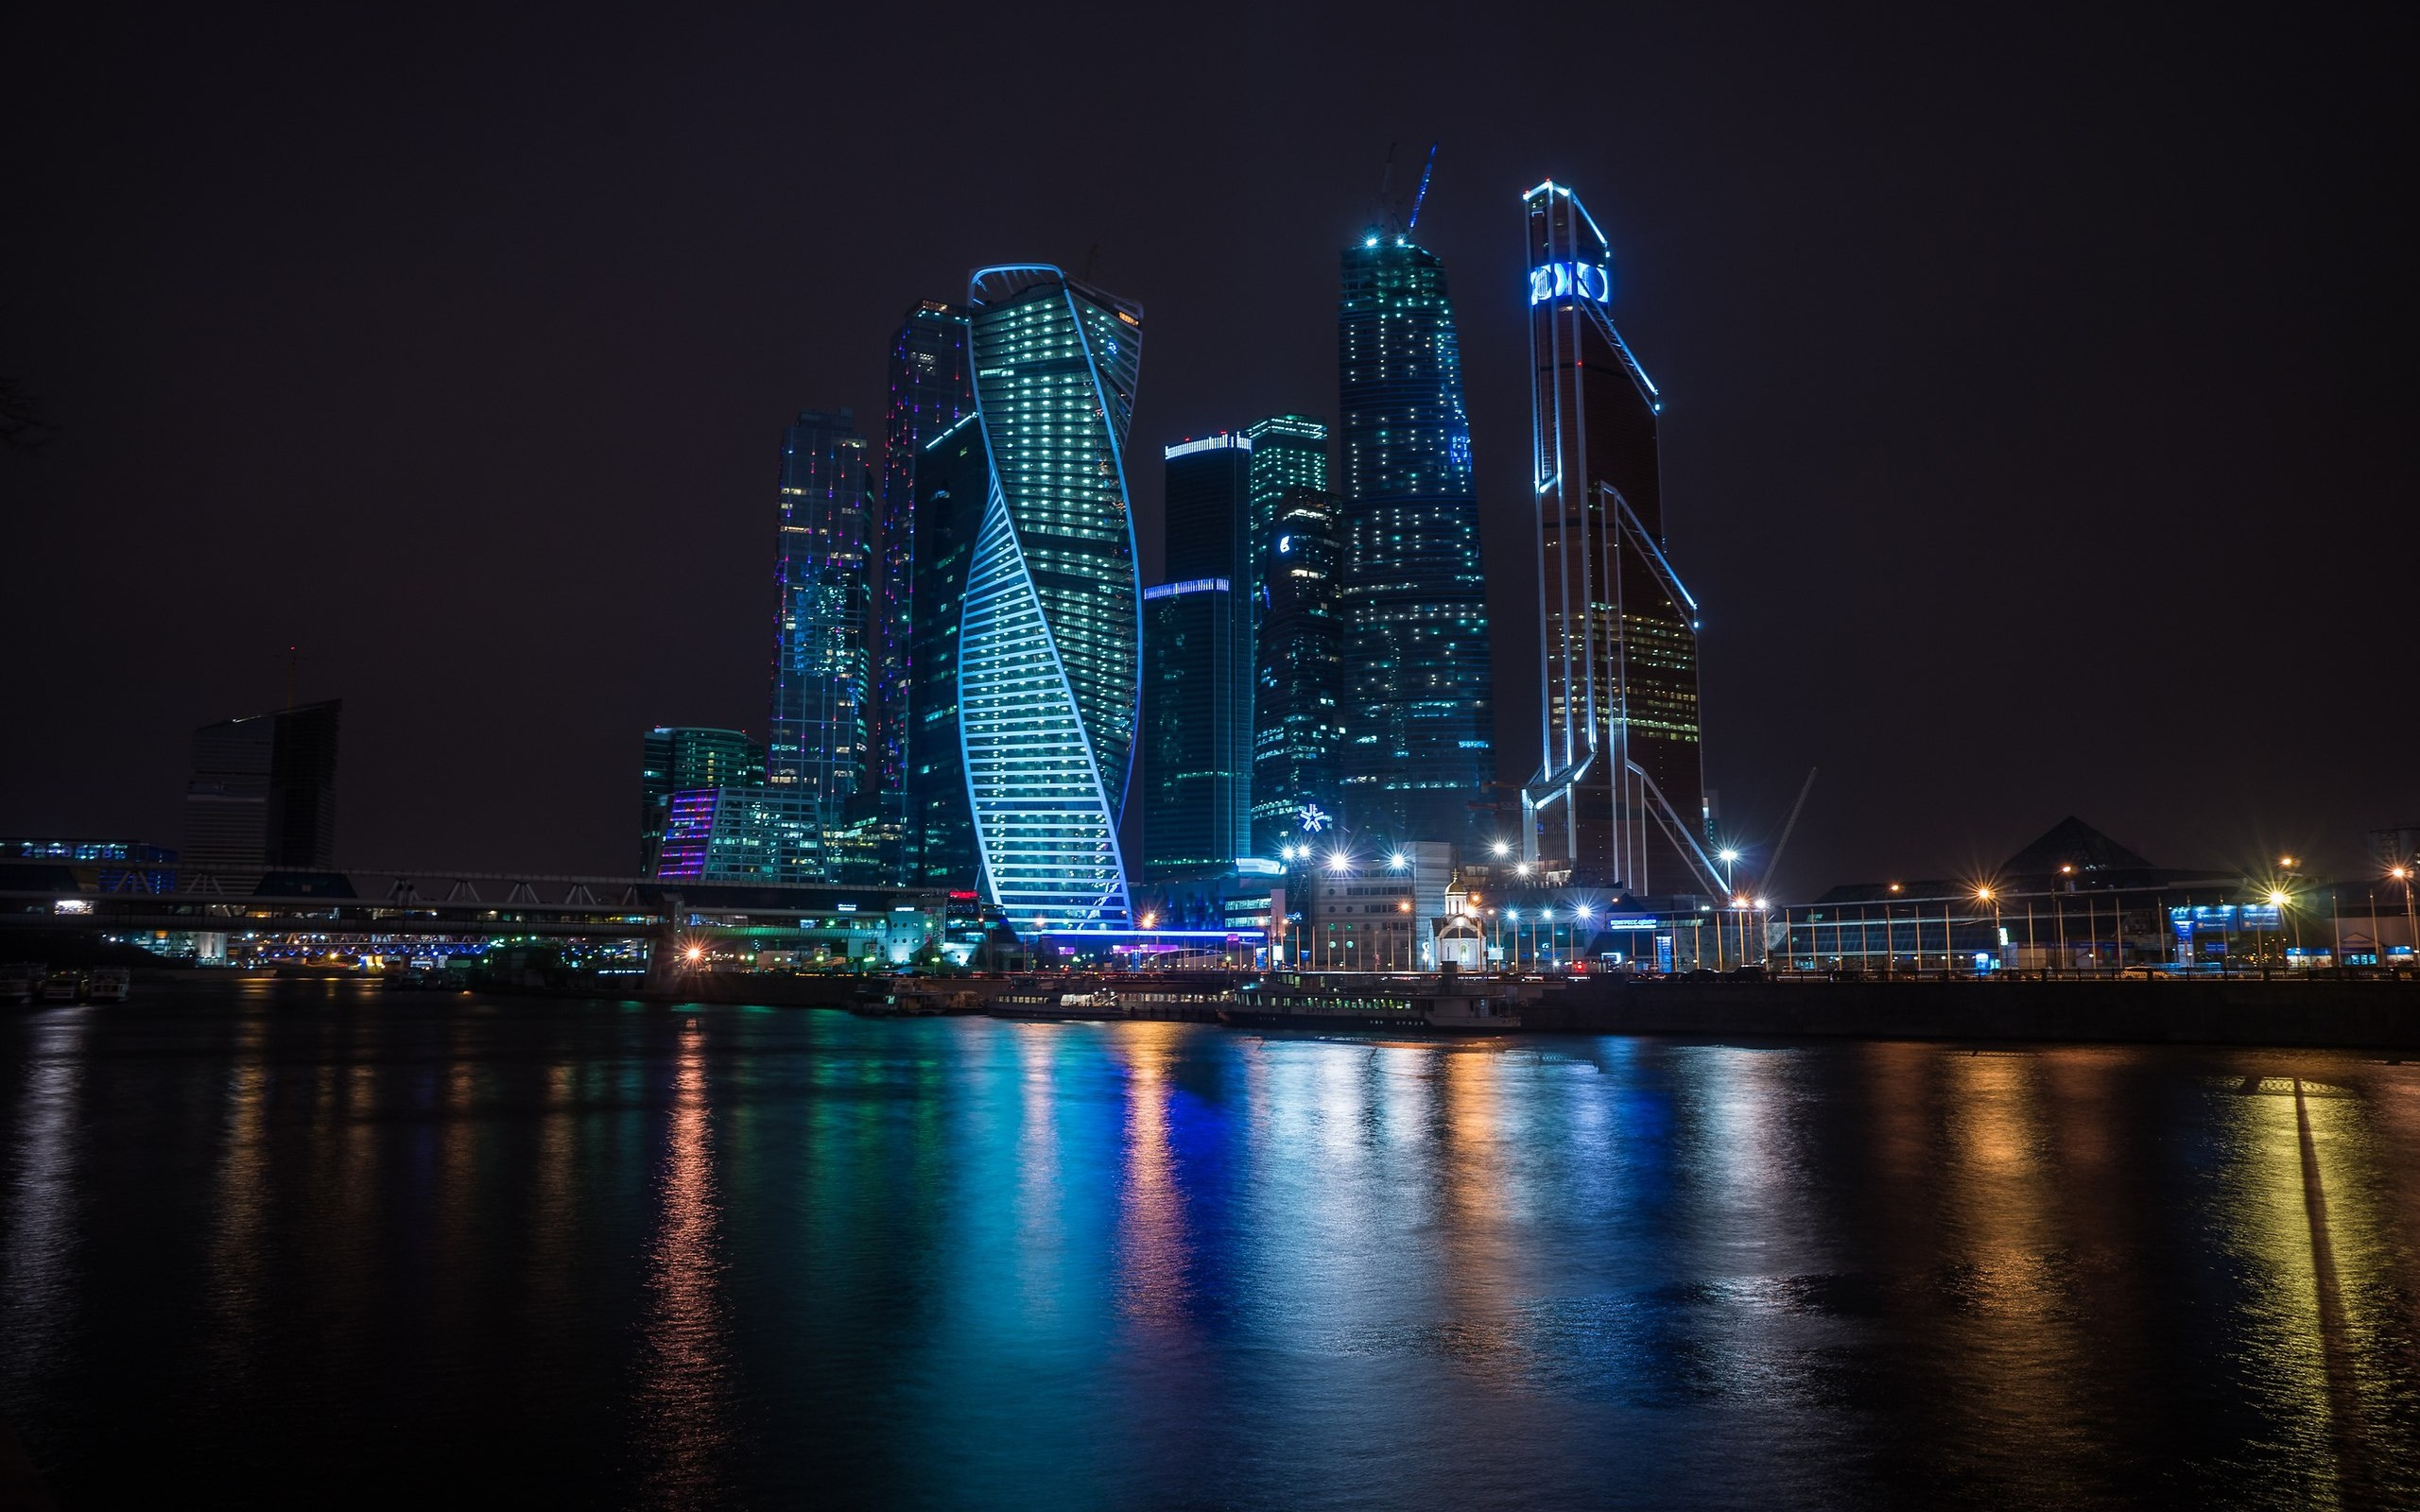 Wallpaper Russia Moscow Skyscrapers Night River Lights